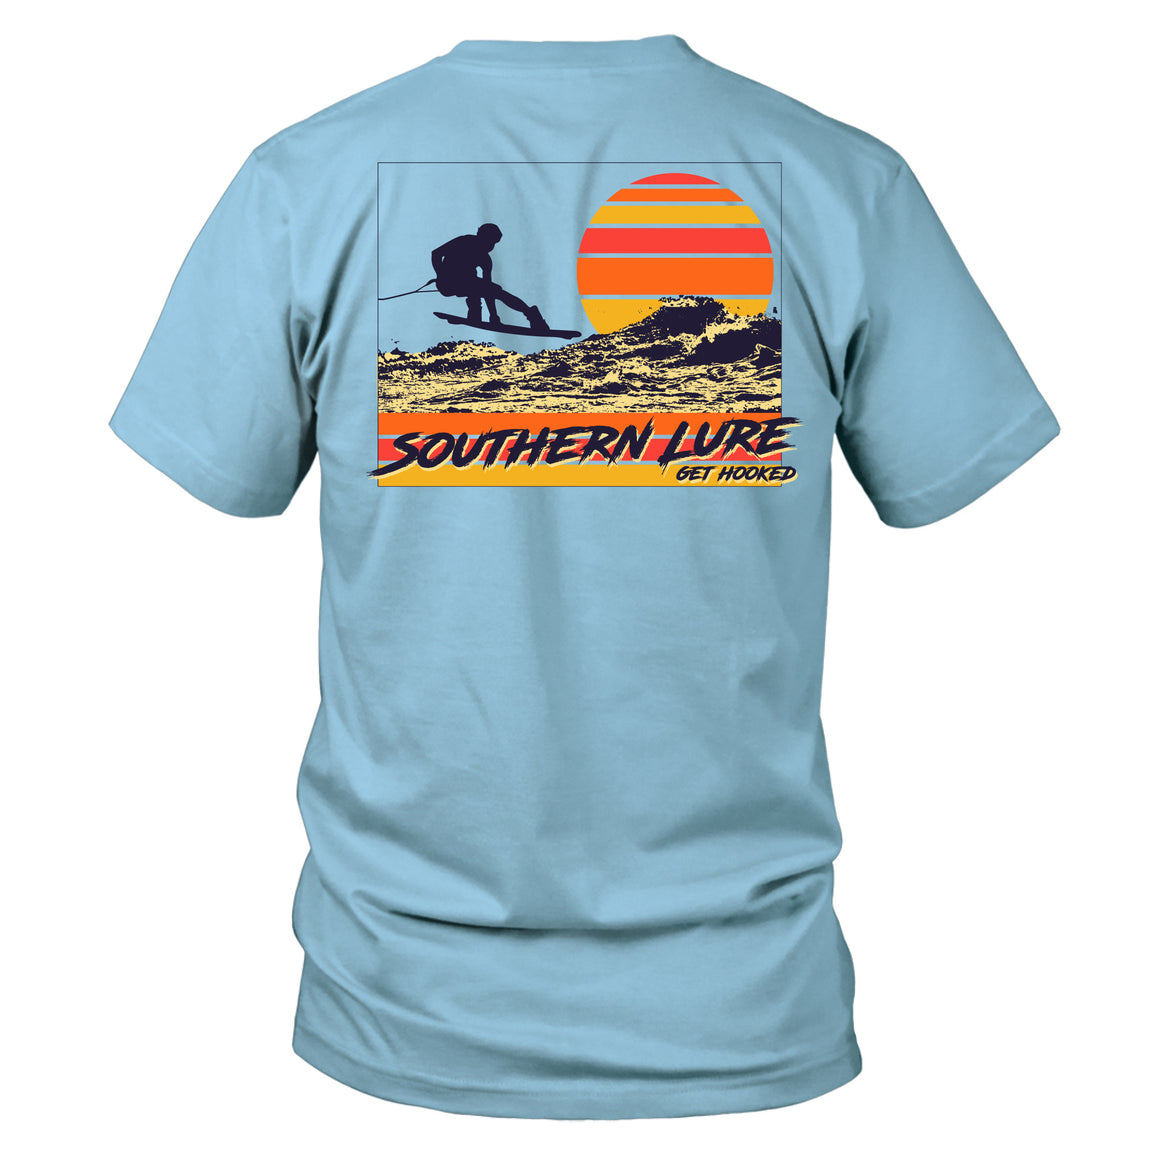 Youth & Toddler Short Sleeve Cotton Tee - Wakeboarding - Sky Blue